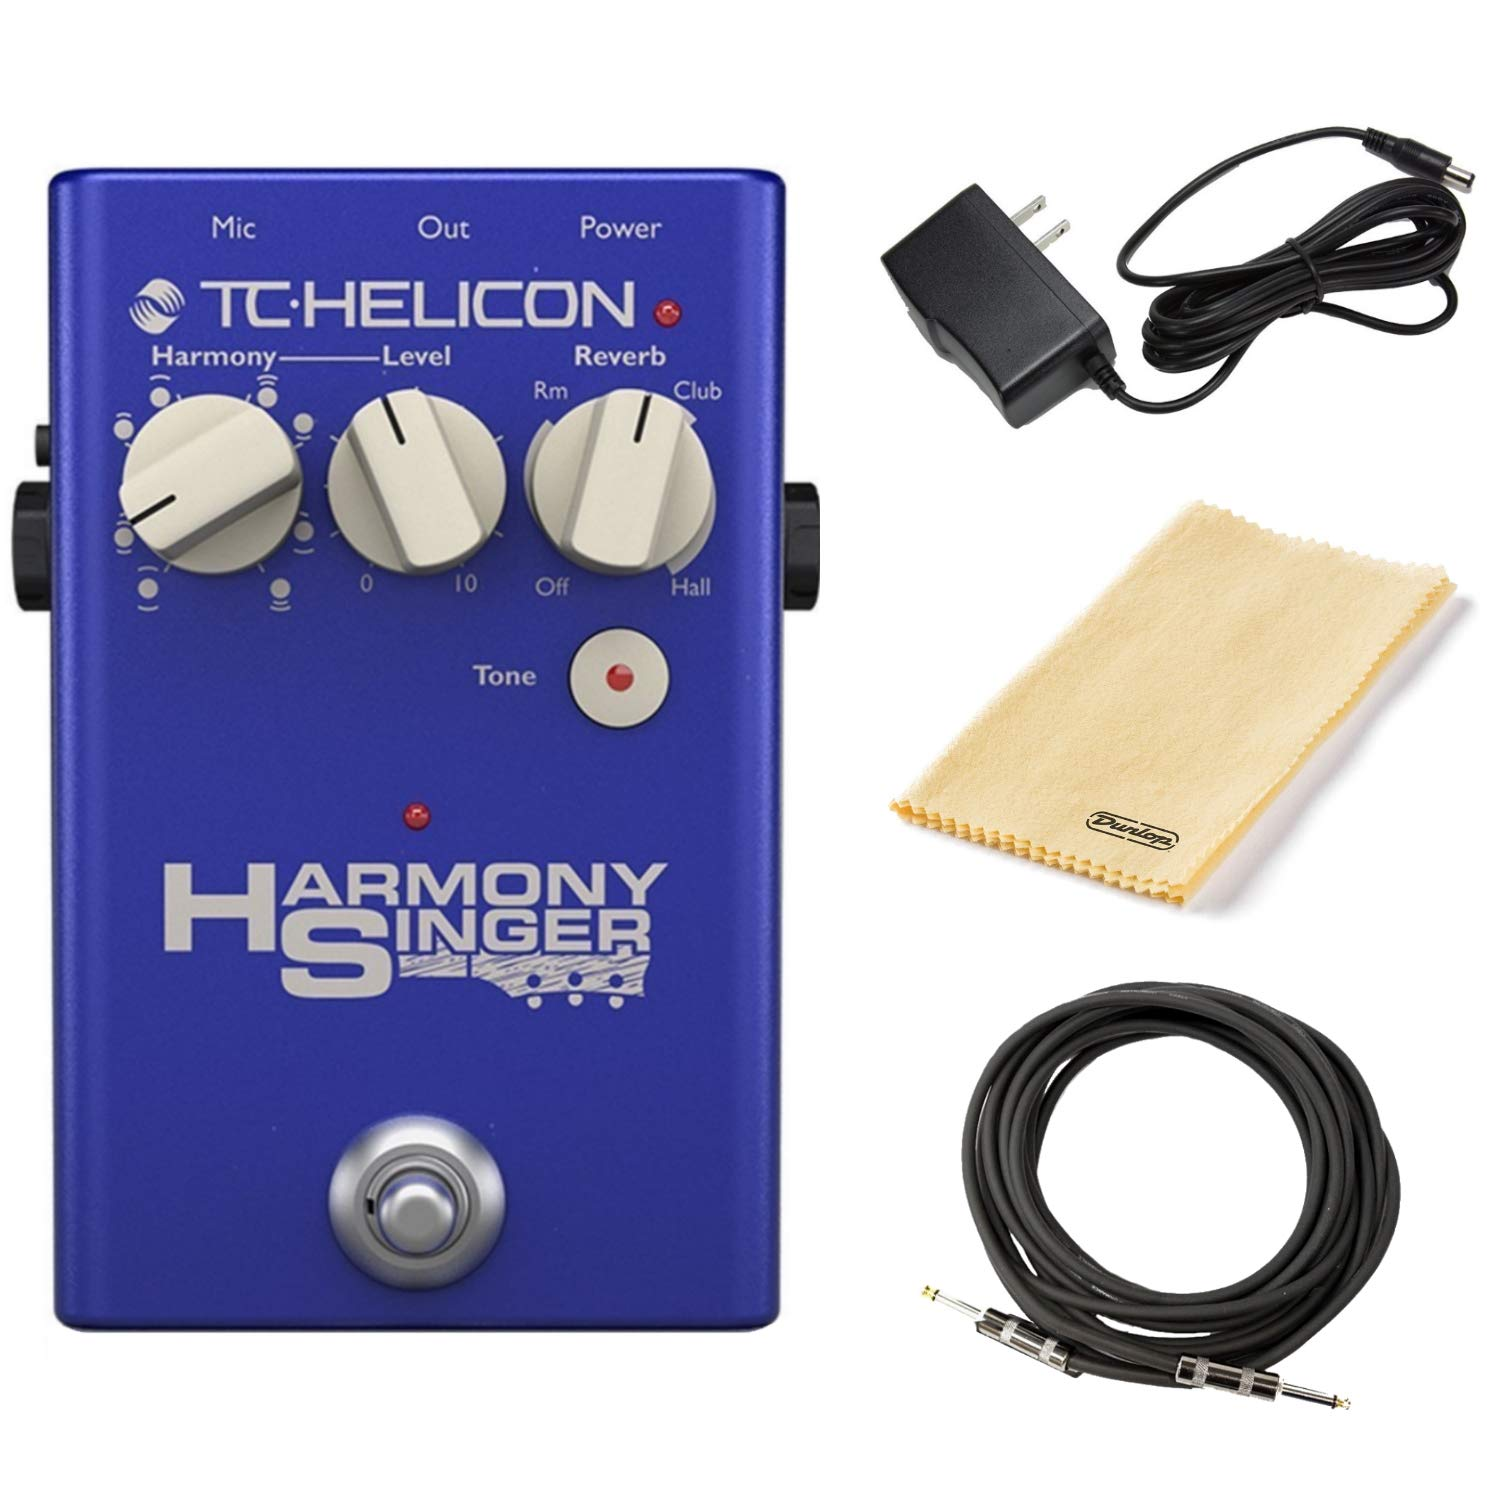 TC Helicon Harmony Singer 2 Vocal Effects Processor Bundle with 9V Power Supply, Dunlop Polish Cloth, and 10-foot Instrument Cable